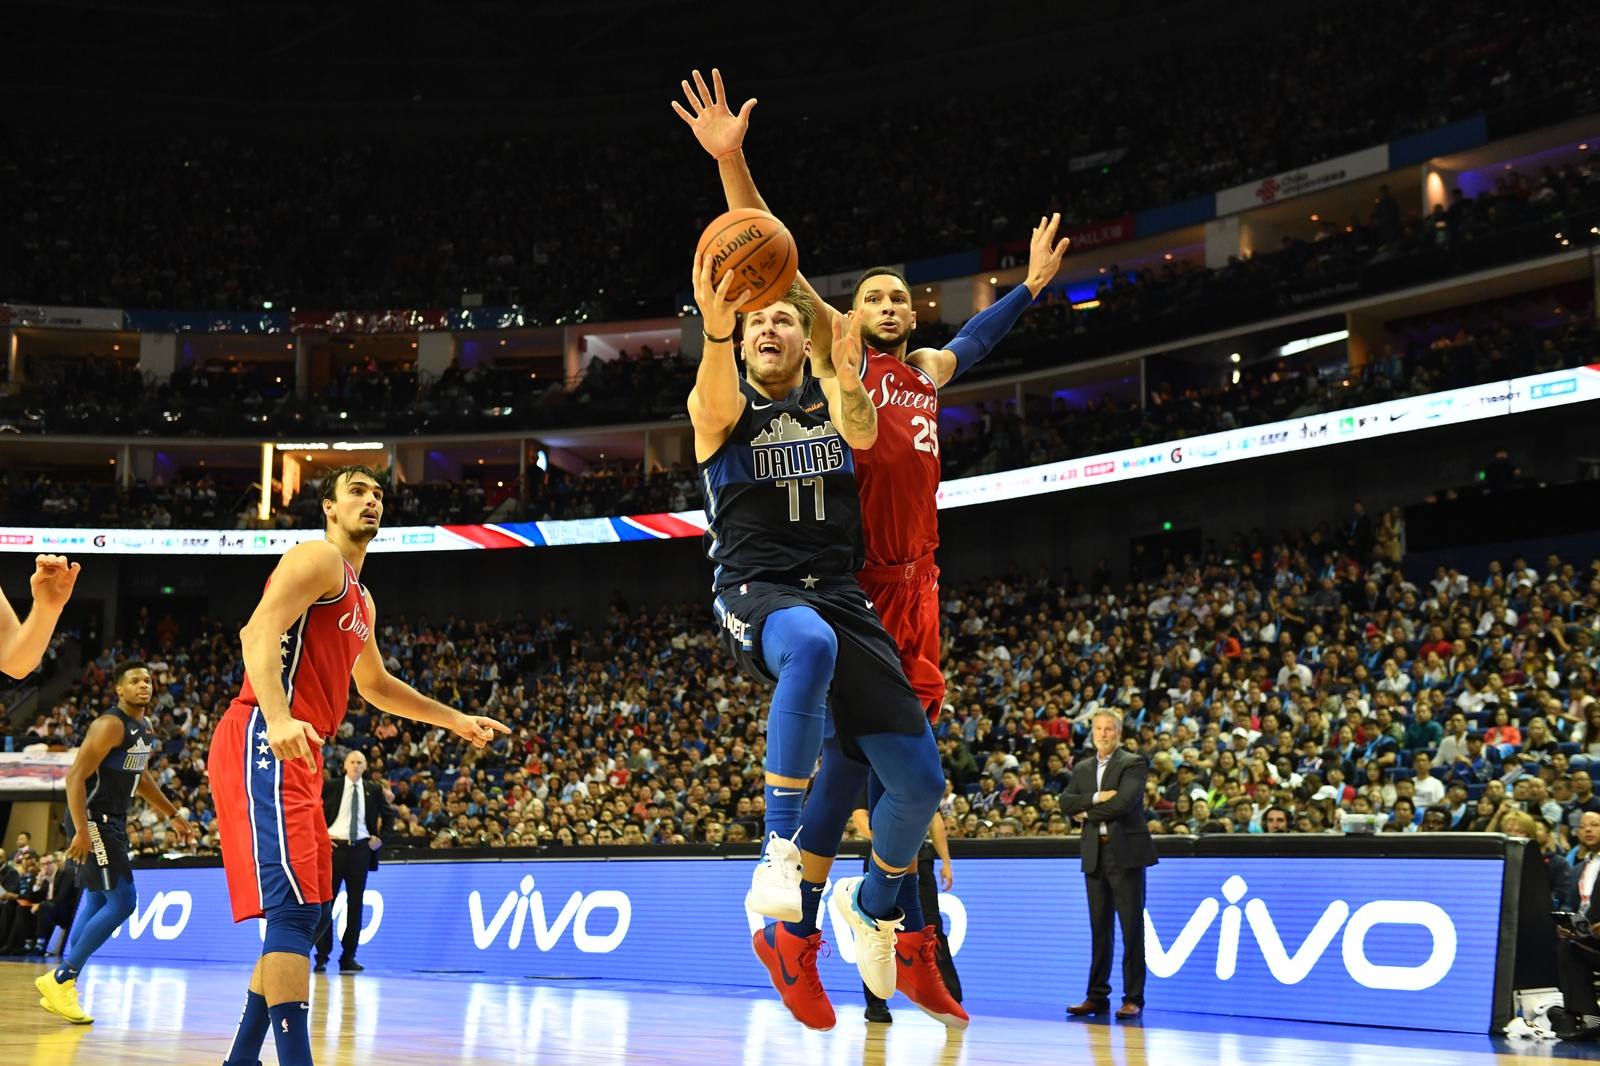 Luka Doncic #77 of the Dallas Mavericks shoots against Ben Simmons #25 of the Philadelphia 76ers as part of the 2018 China Games on October 5, 2018 at the Mercedes-Benz Arena in Shanghai, China.